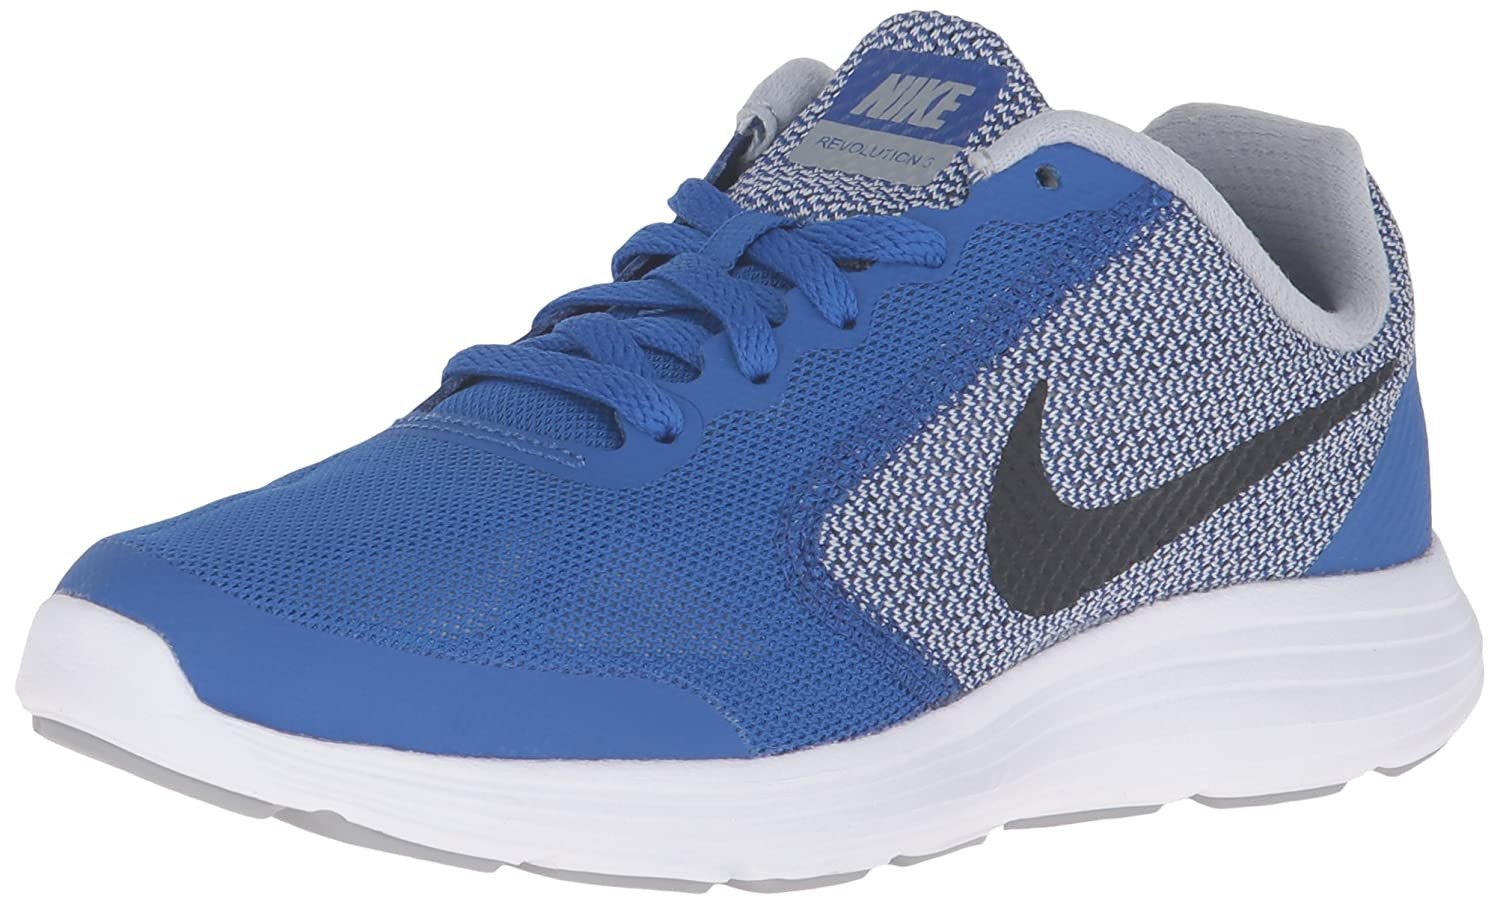 NIKE ' Revolution 3 (GS) Running Shoes B007I847HE 4 Big Kid M|Game Royal/Black/Wolf Grey/White